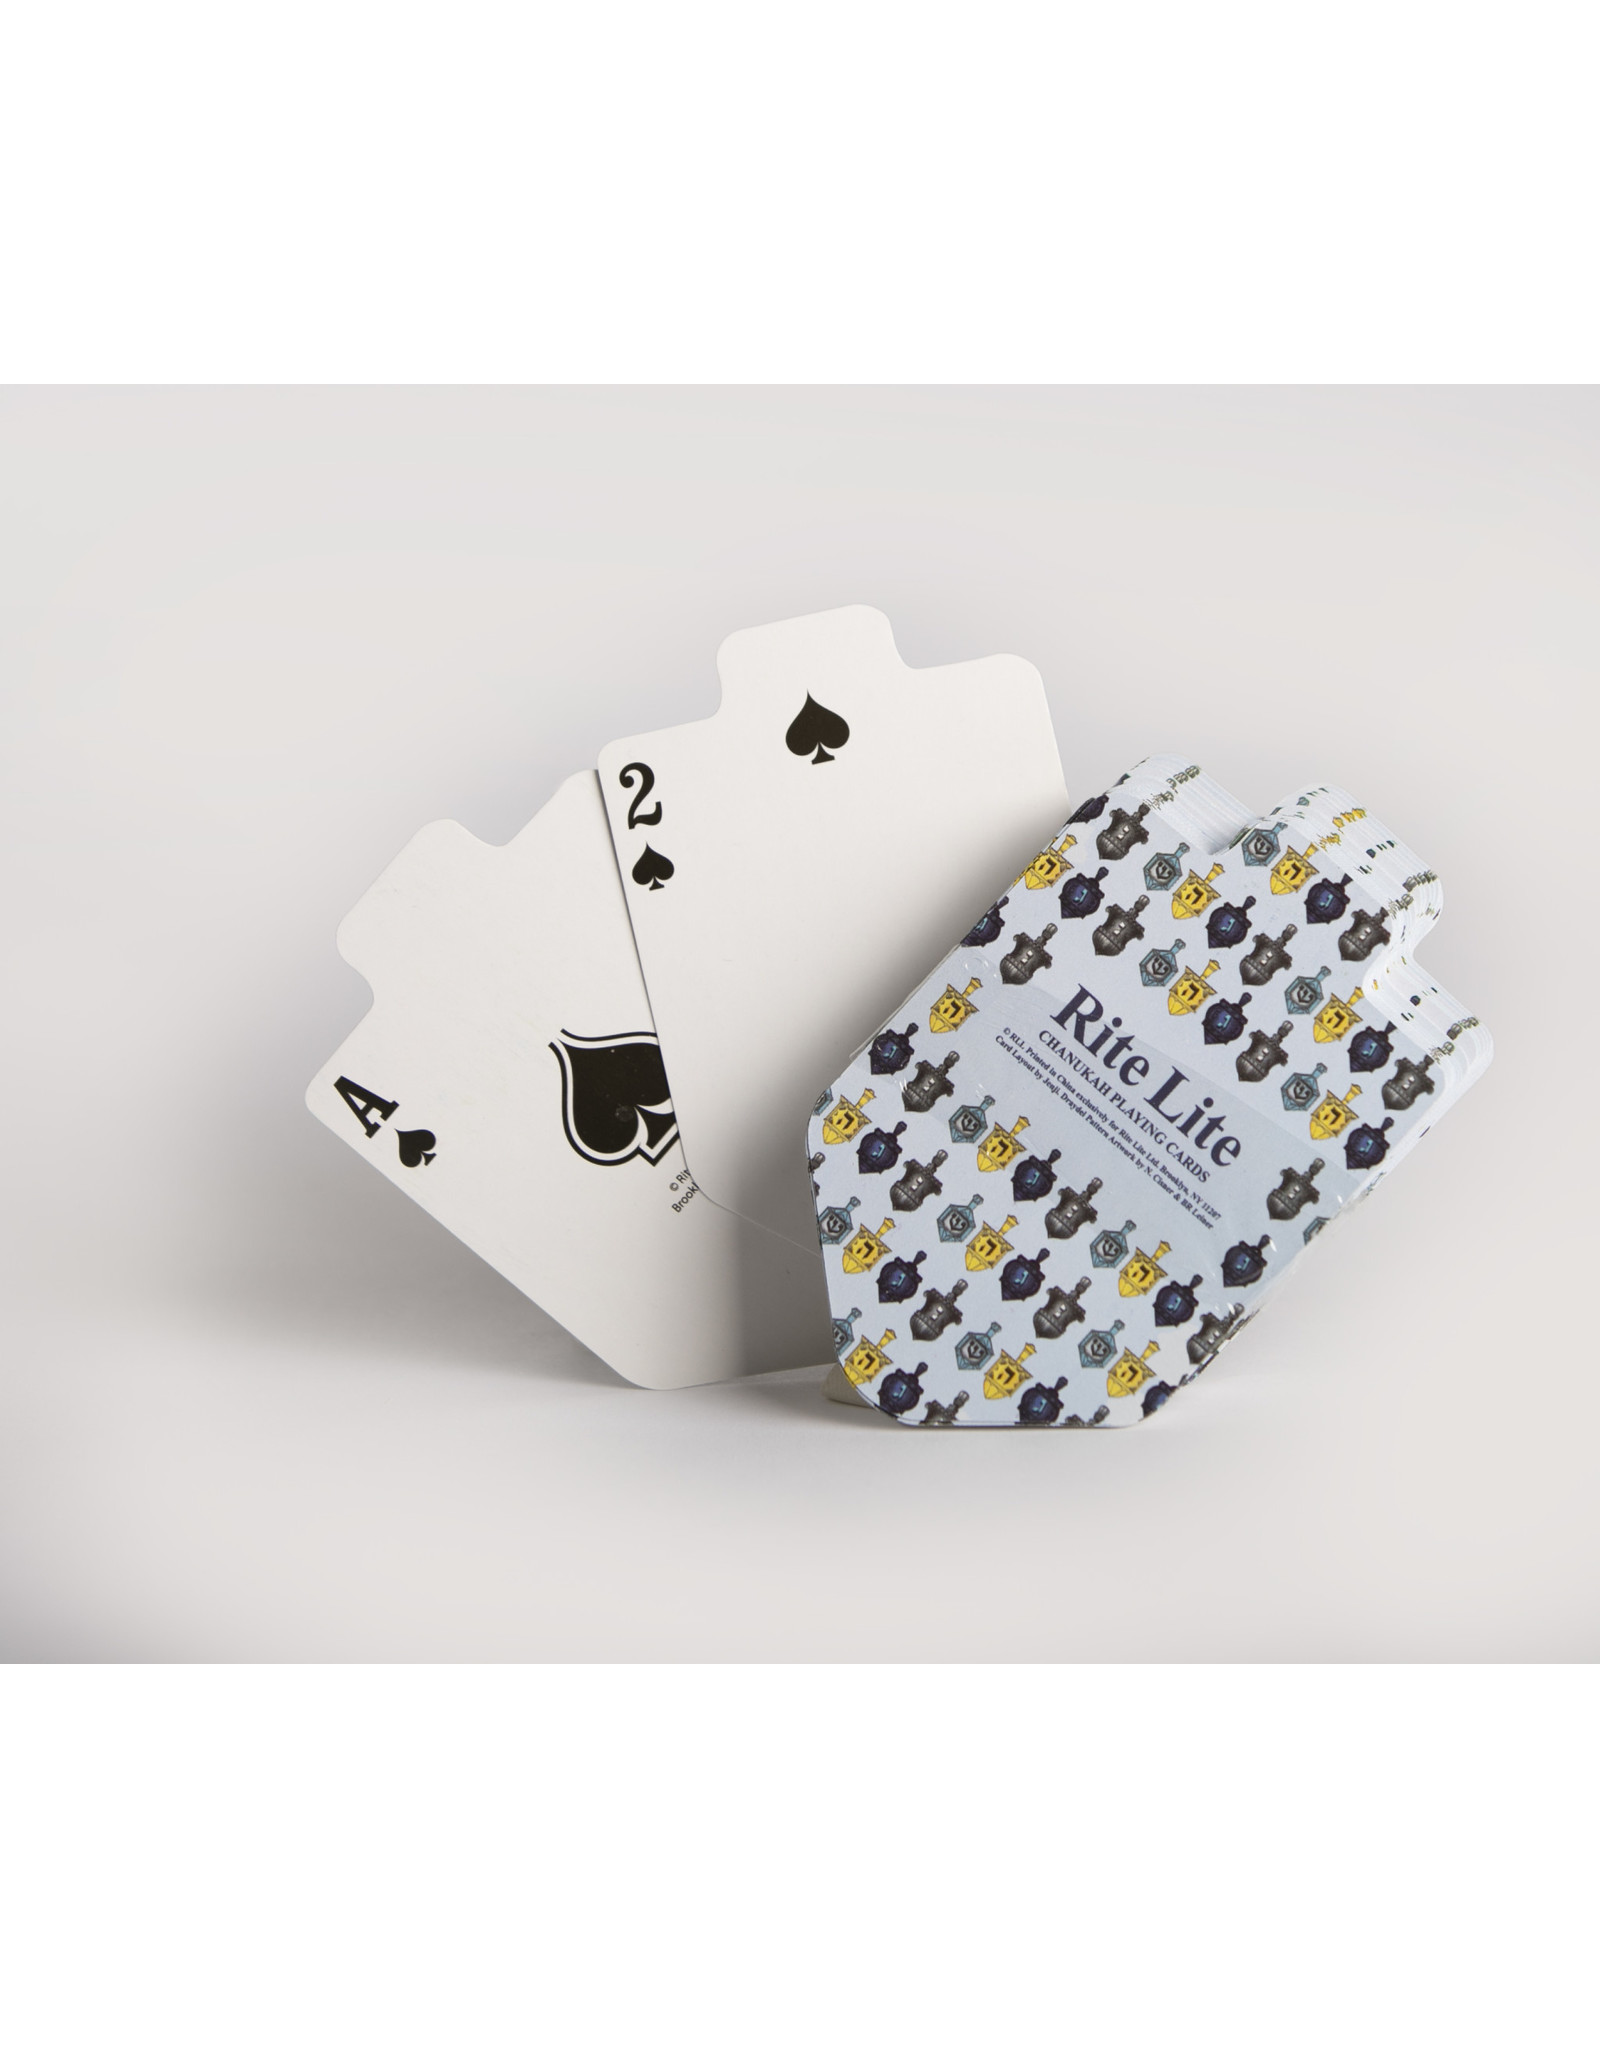 Playing Cards Dreidel Shaped